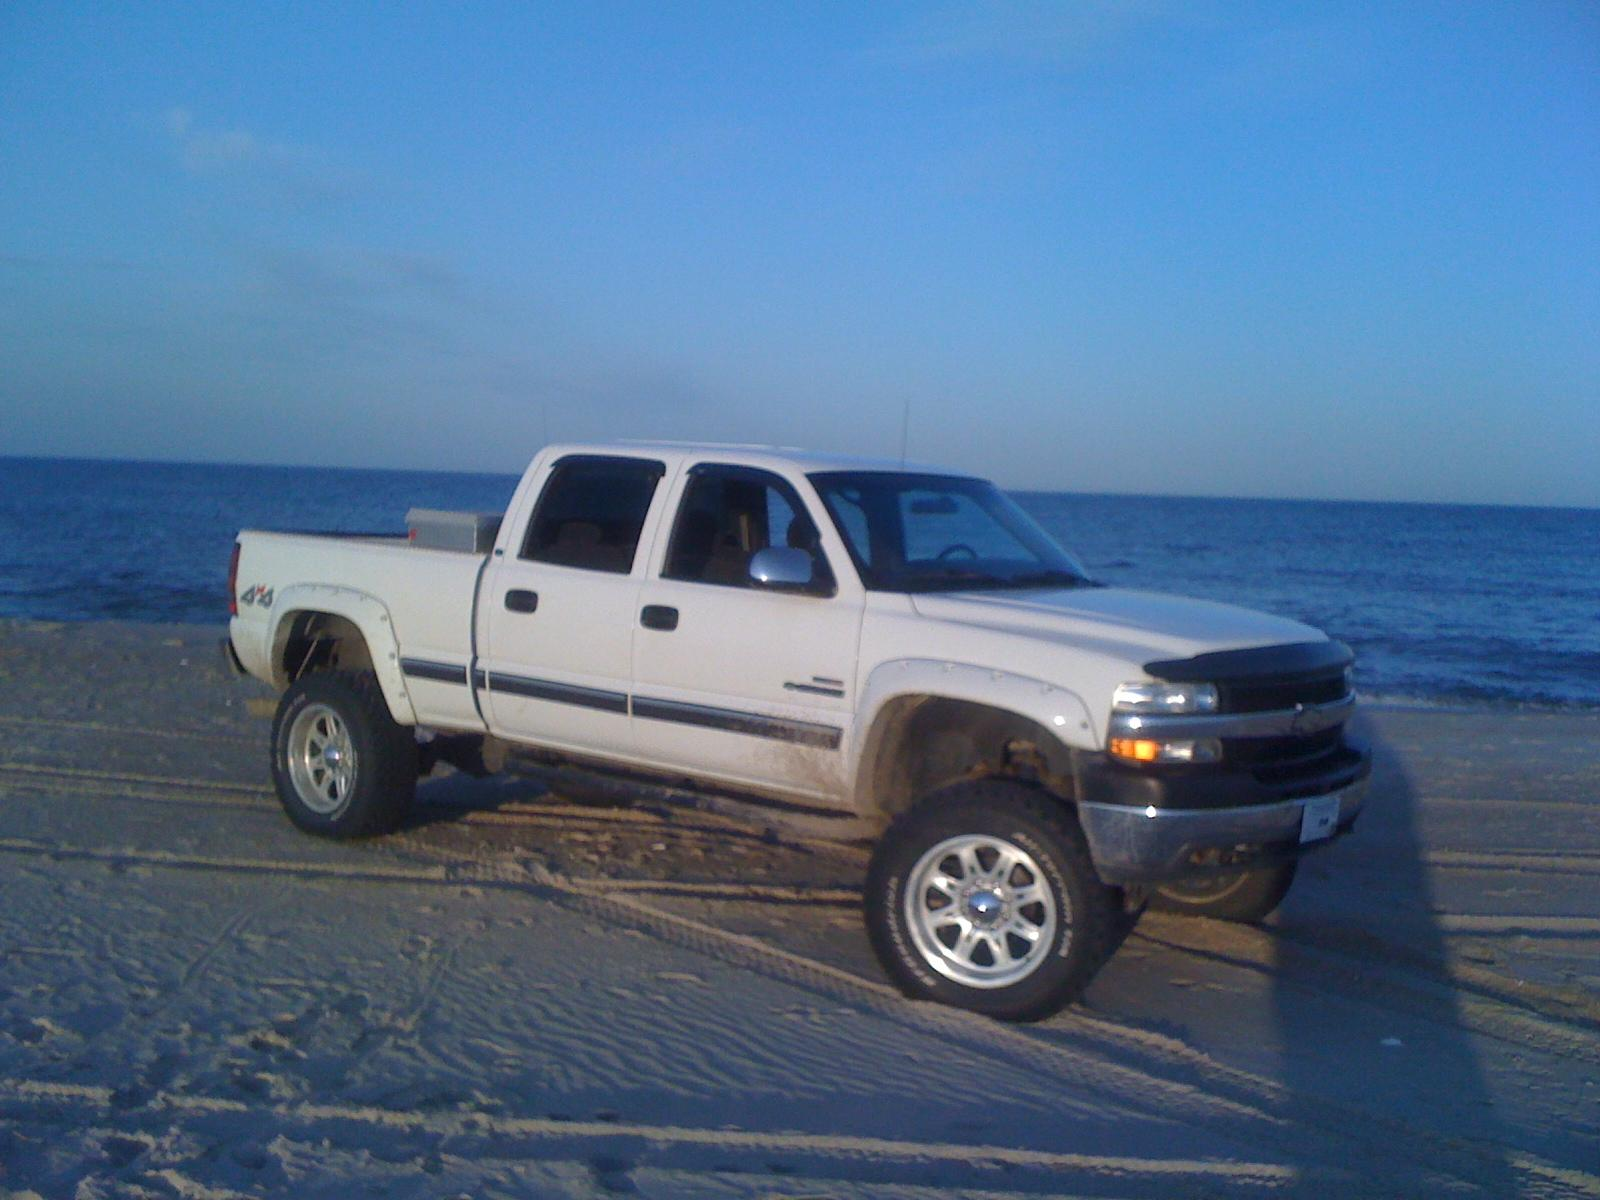 tahon24s 2001 chevrolet silverado 2500 hd crew cab specs photos modification info at cardomain. Black Bedroom Furniture Sets. Home Design Ideas